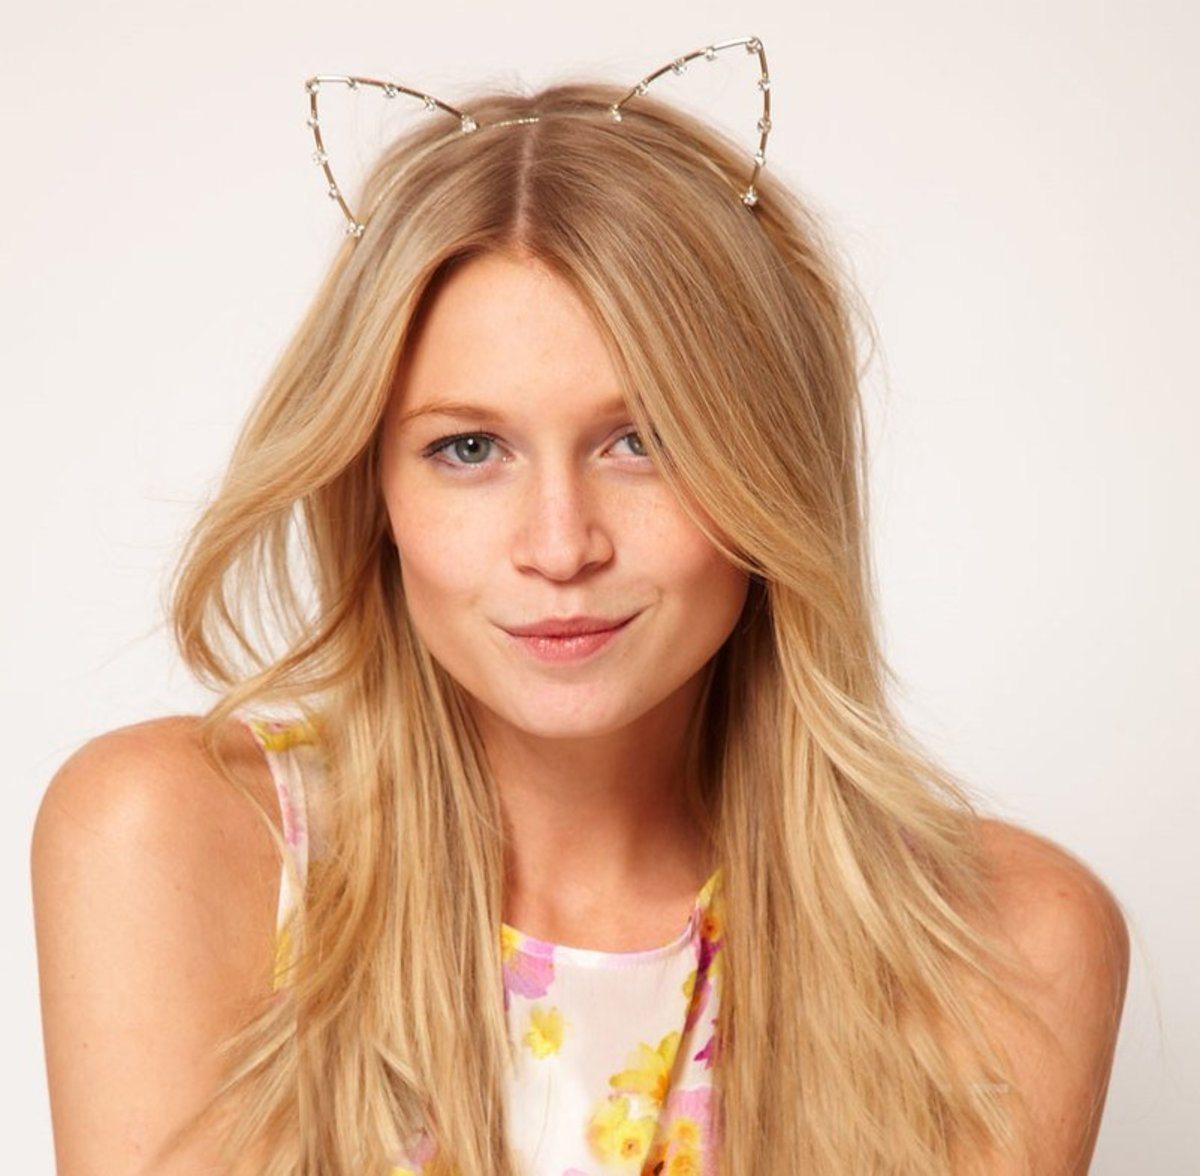 Girls who love feline ears, especially the anime fans, will love this headband as a gift.